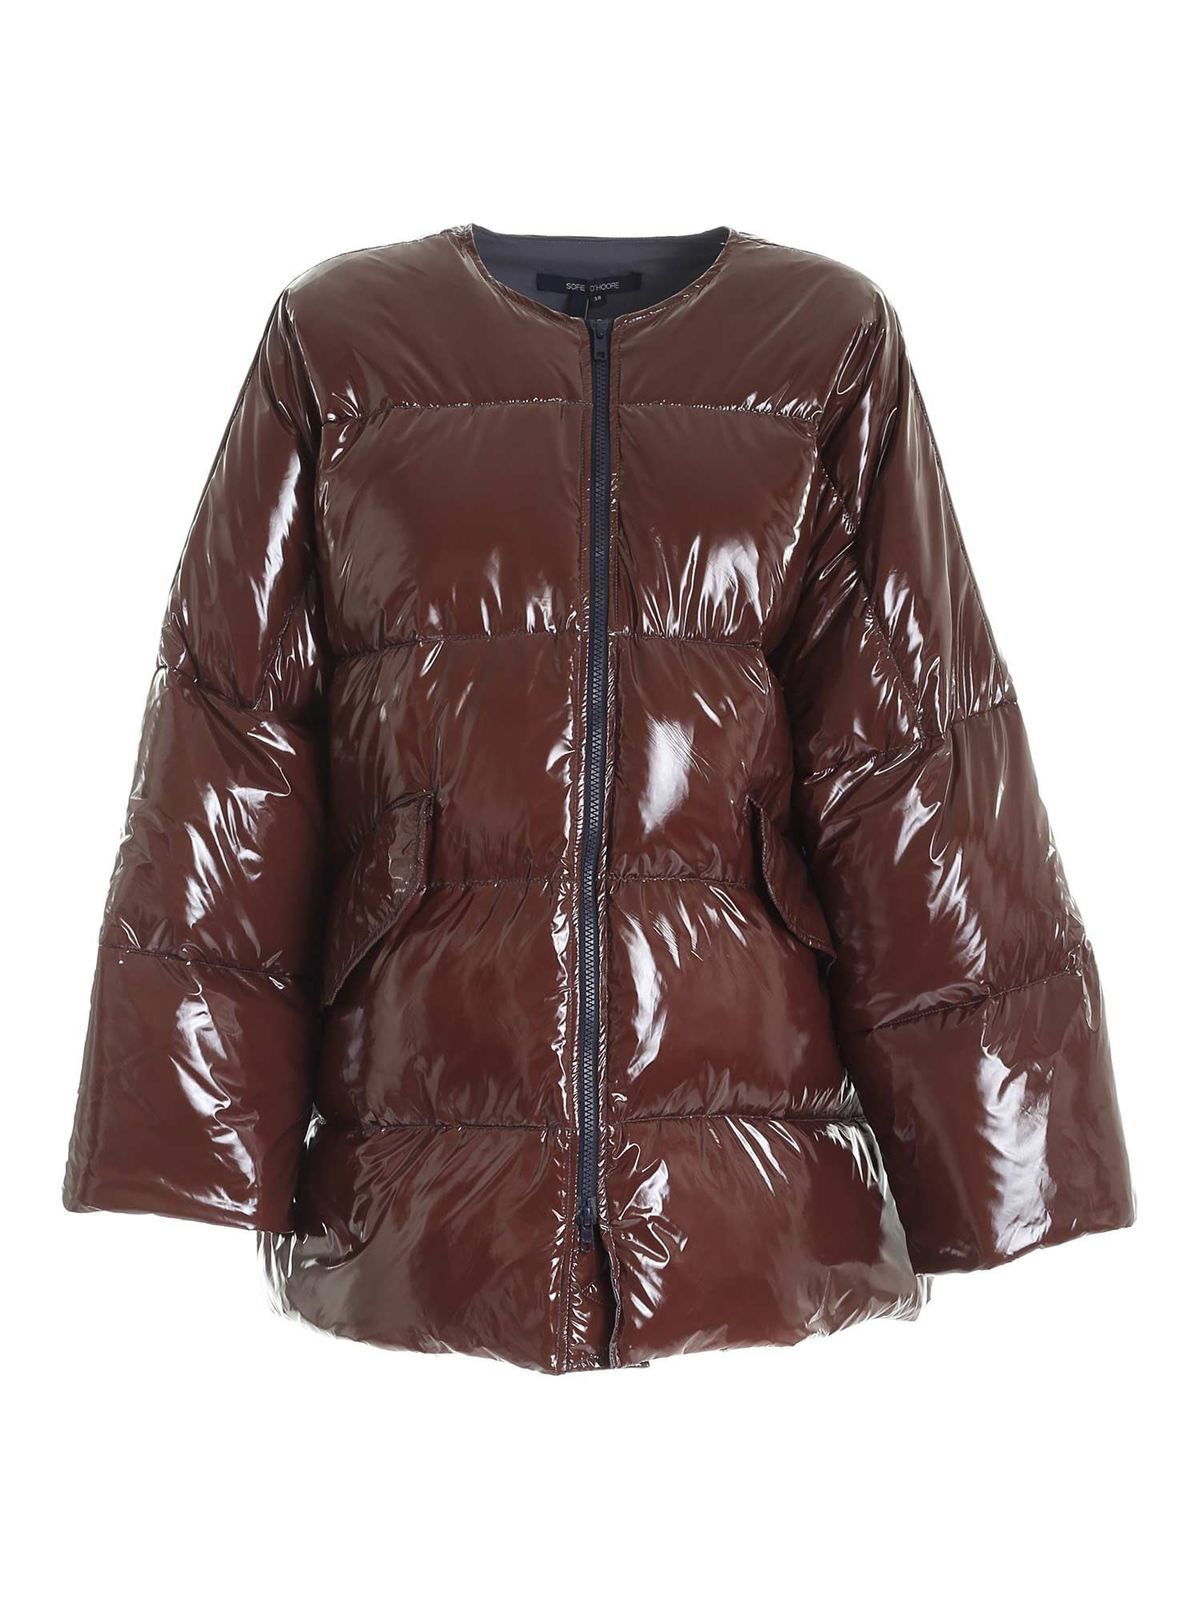 Sofie D'hoore PAINTED EFFECT OVERSIZED DOWN JACKET IN BROWN